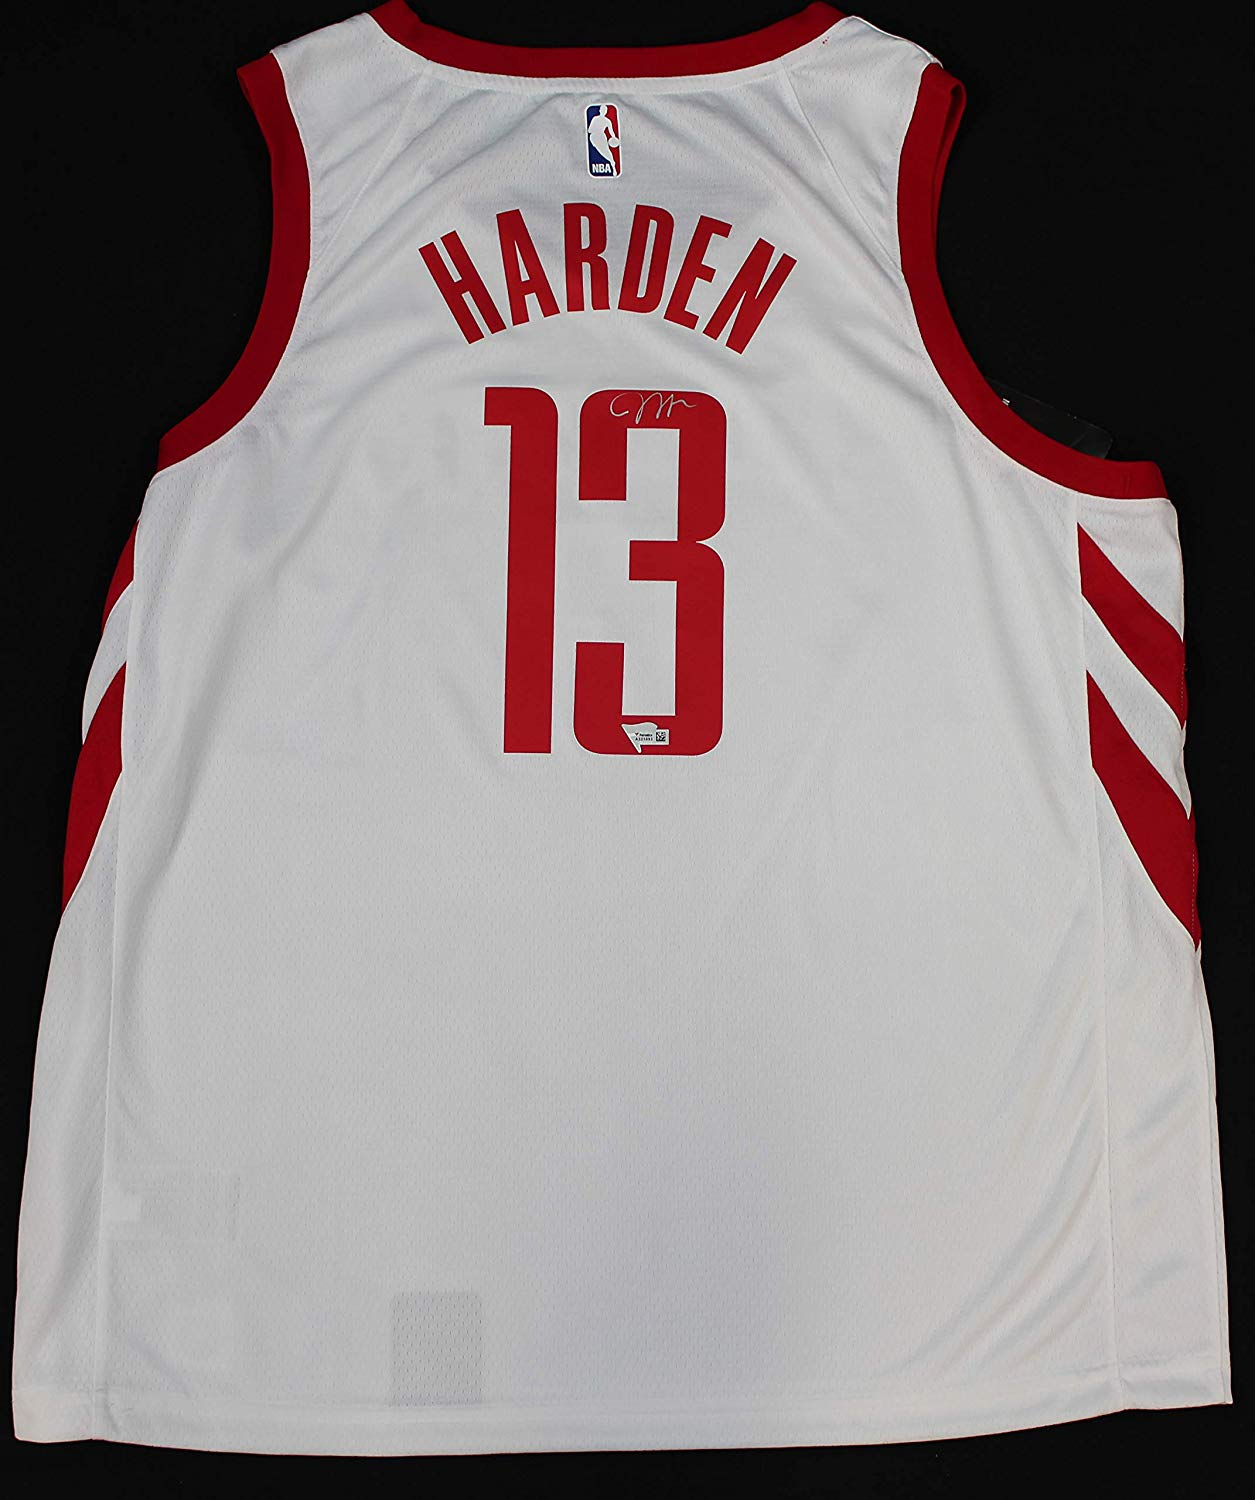 sale retailer 7325b 6ced8 Cheap Harden Jersey, find Harden Jersey deals on line at ...